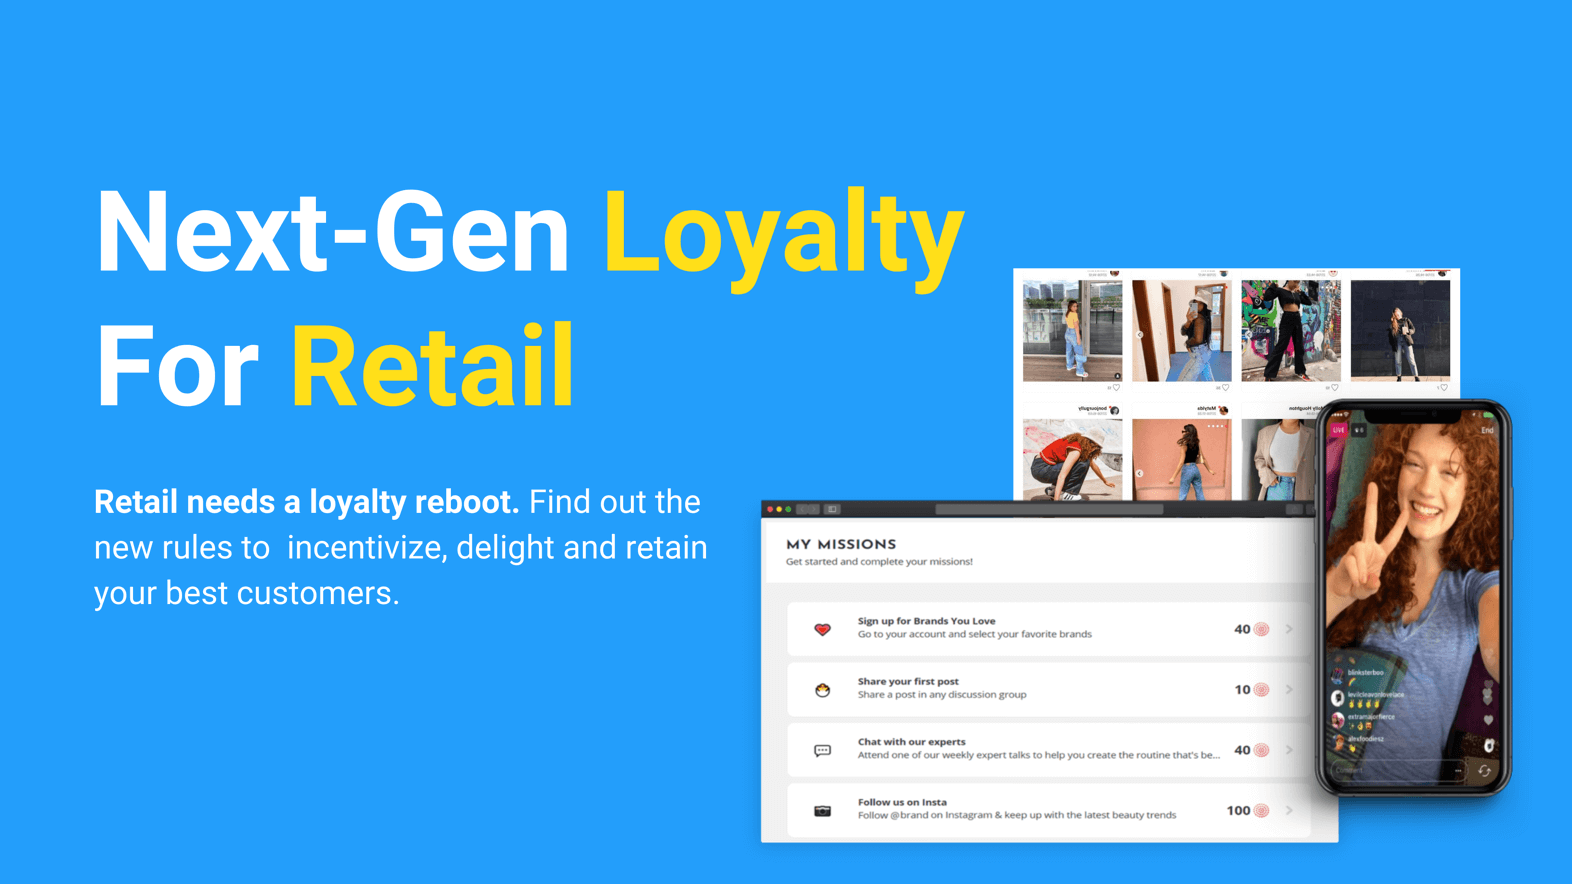 How to build a new loyalty program that incentivizes delights and retains your best customers.